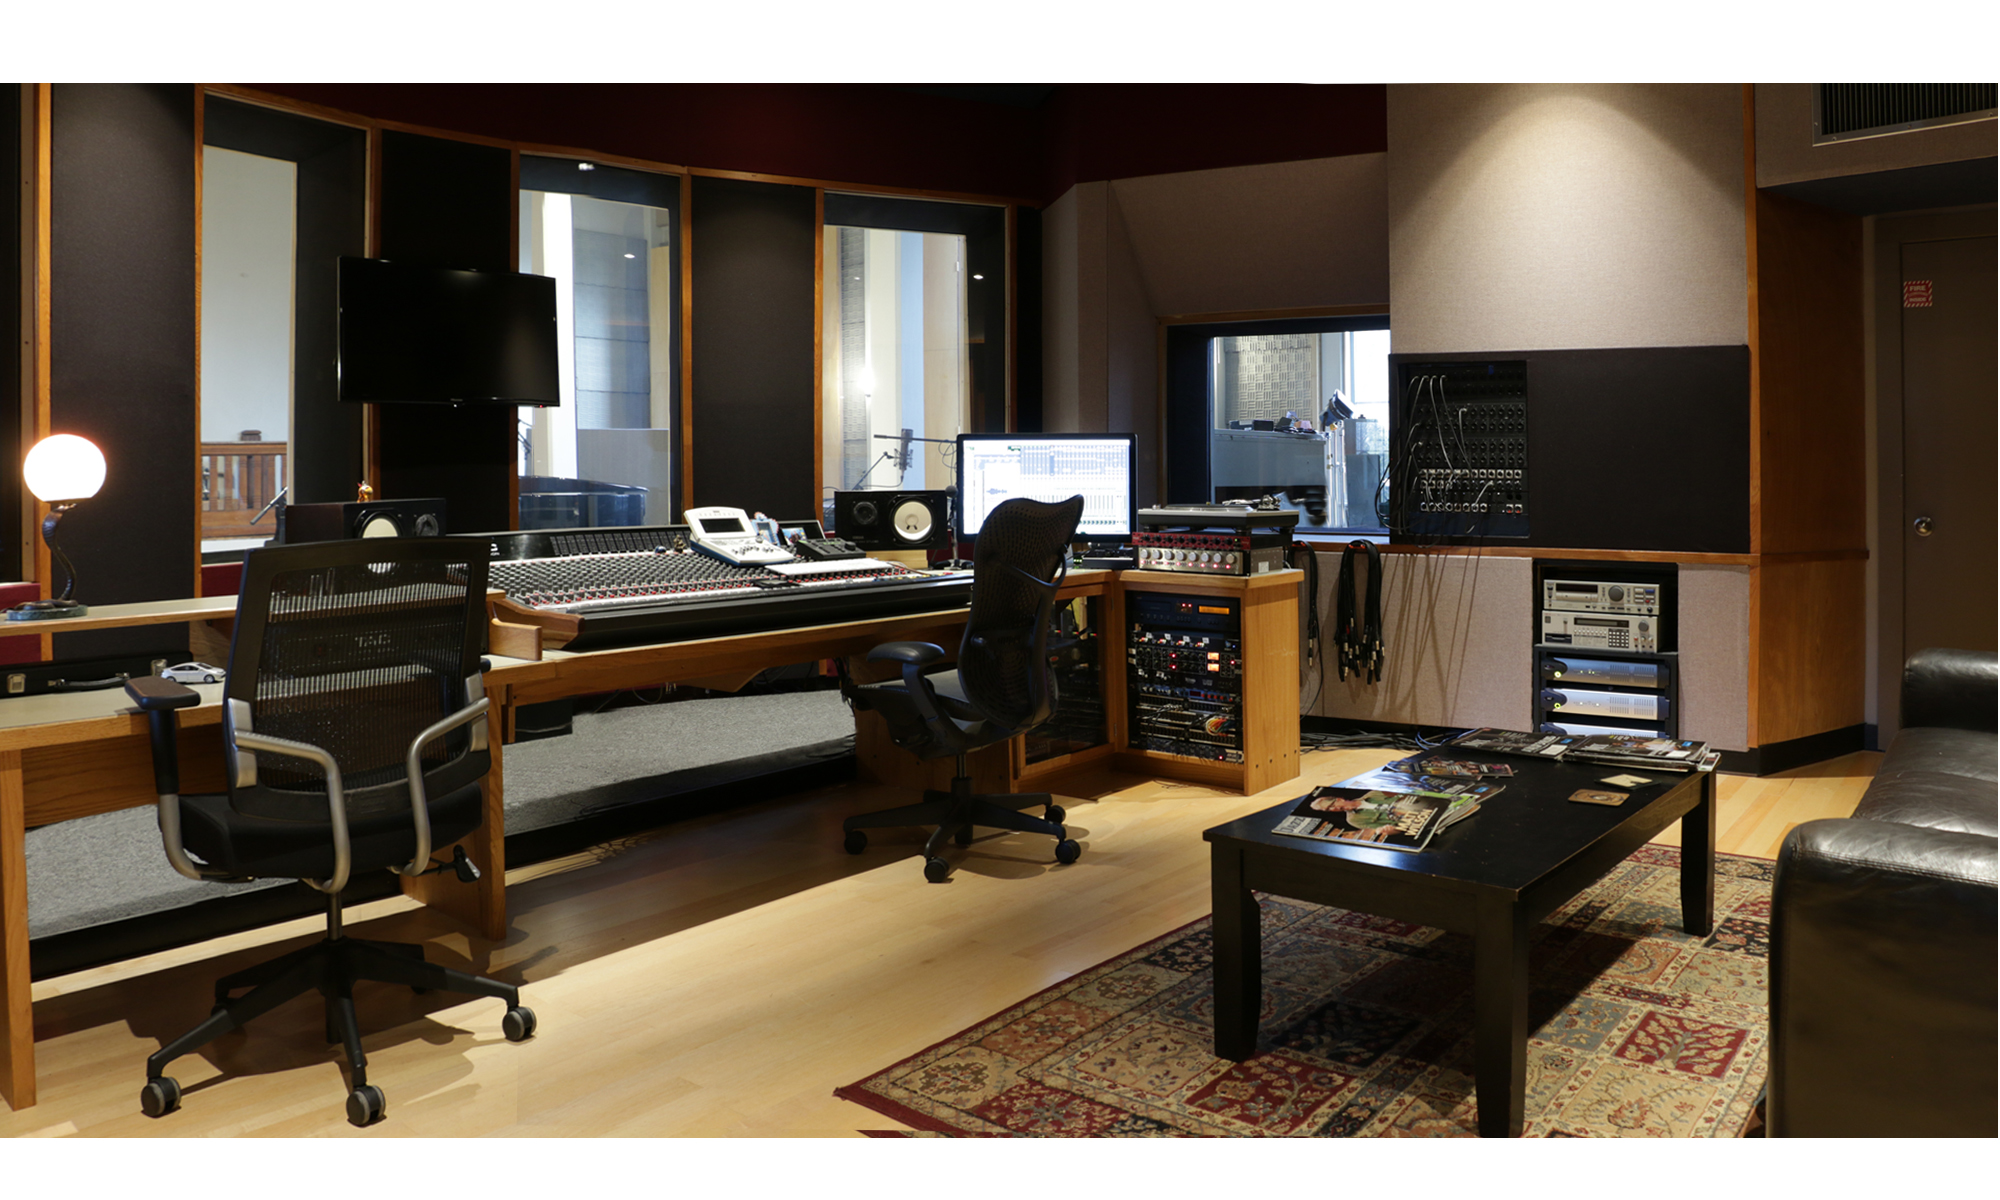 The control room - mains are in the black columns